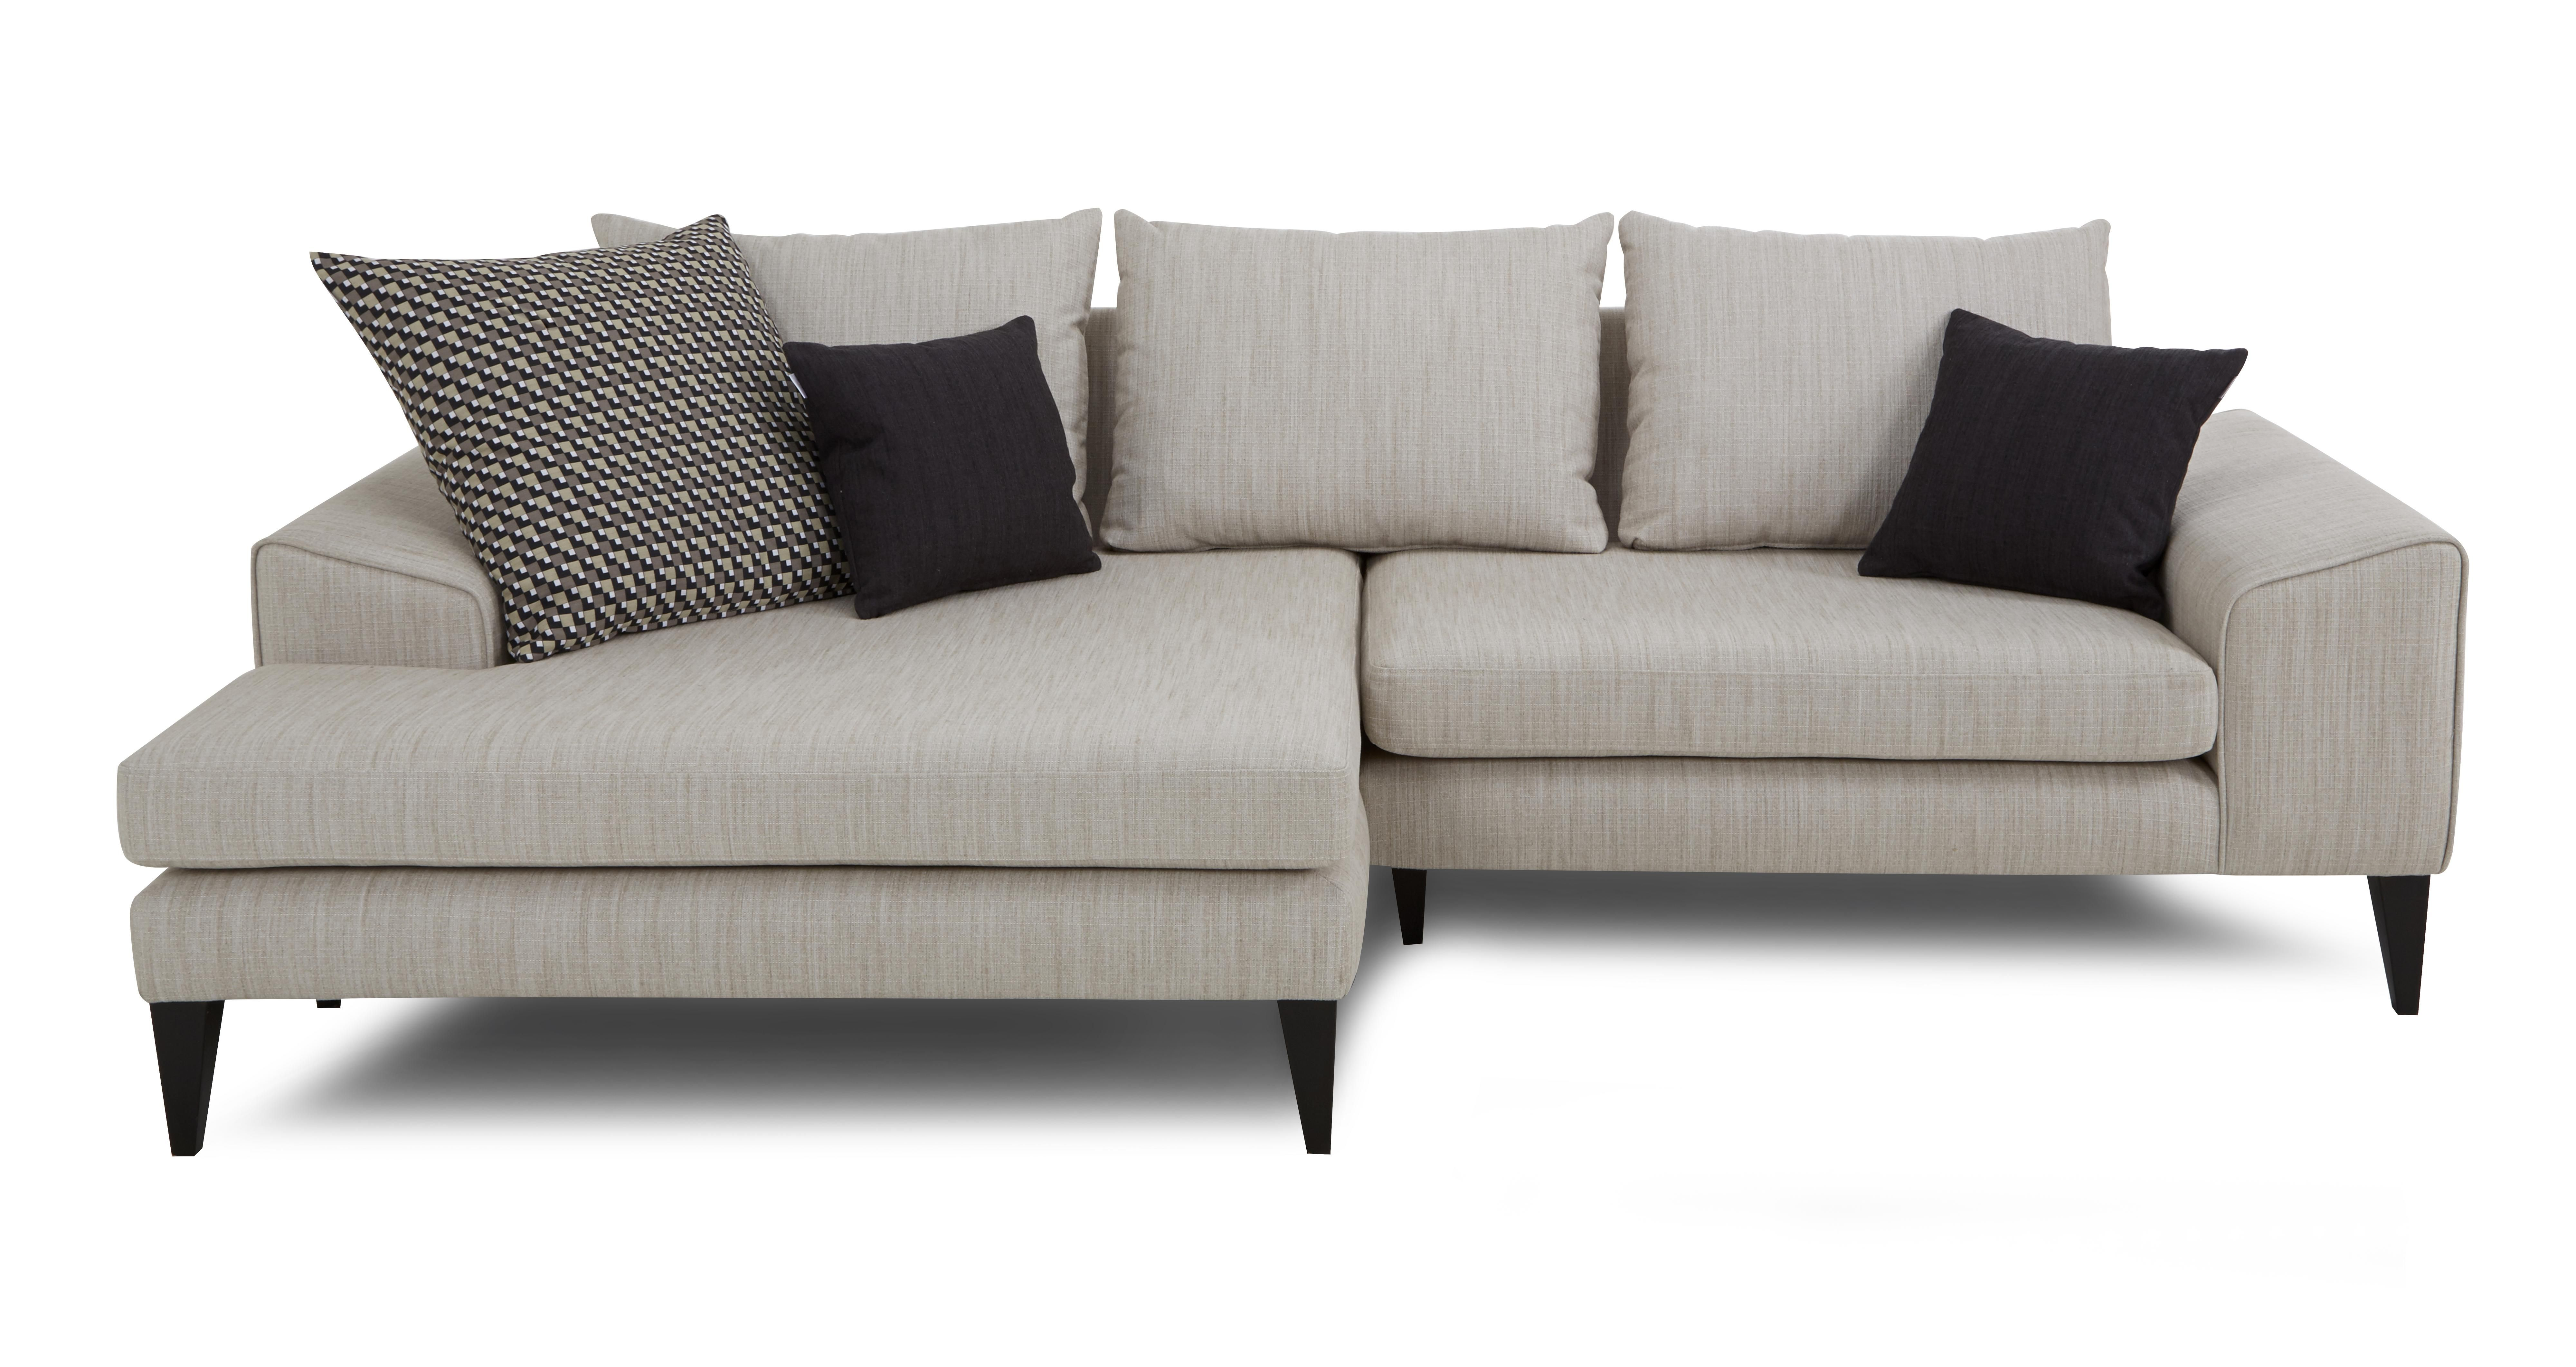 DFS Sorbet Right Hand Facing 4 Seater Lounger Sofa